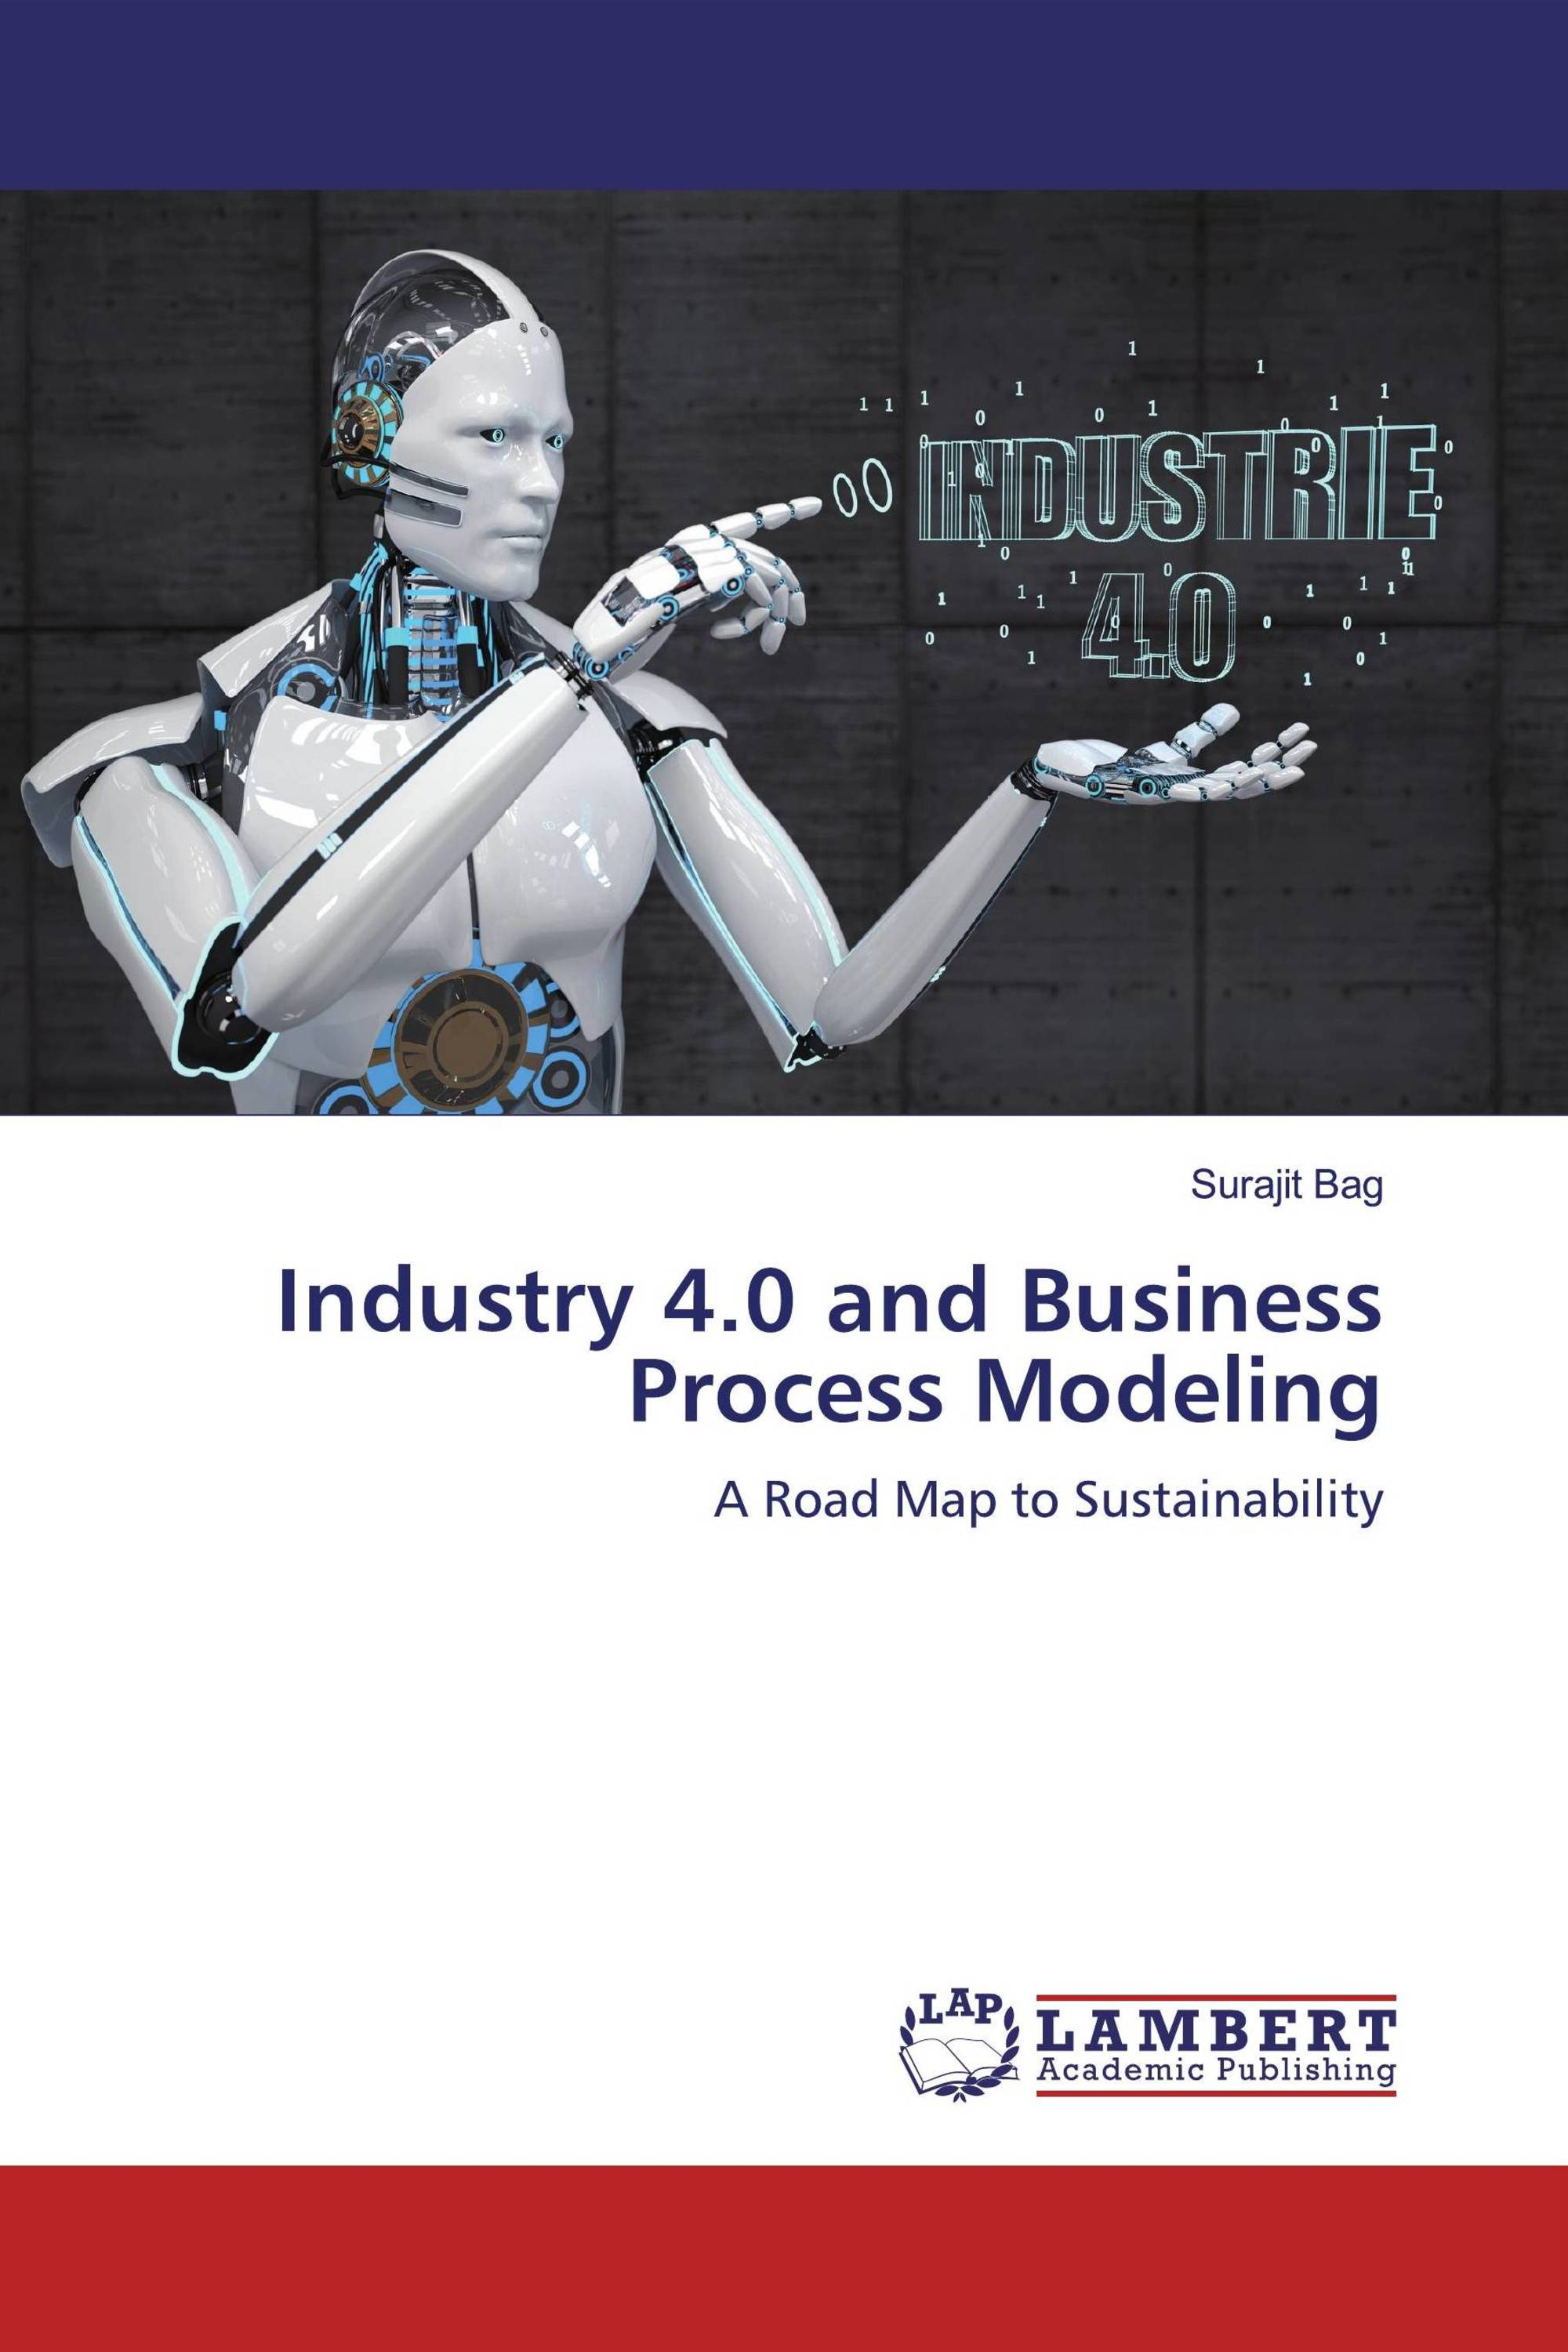 Industry 4.0 and Business Process Modeling